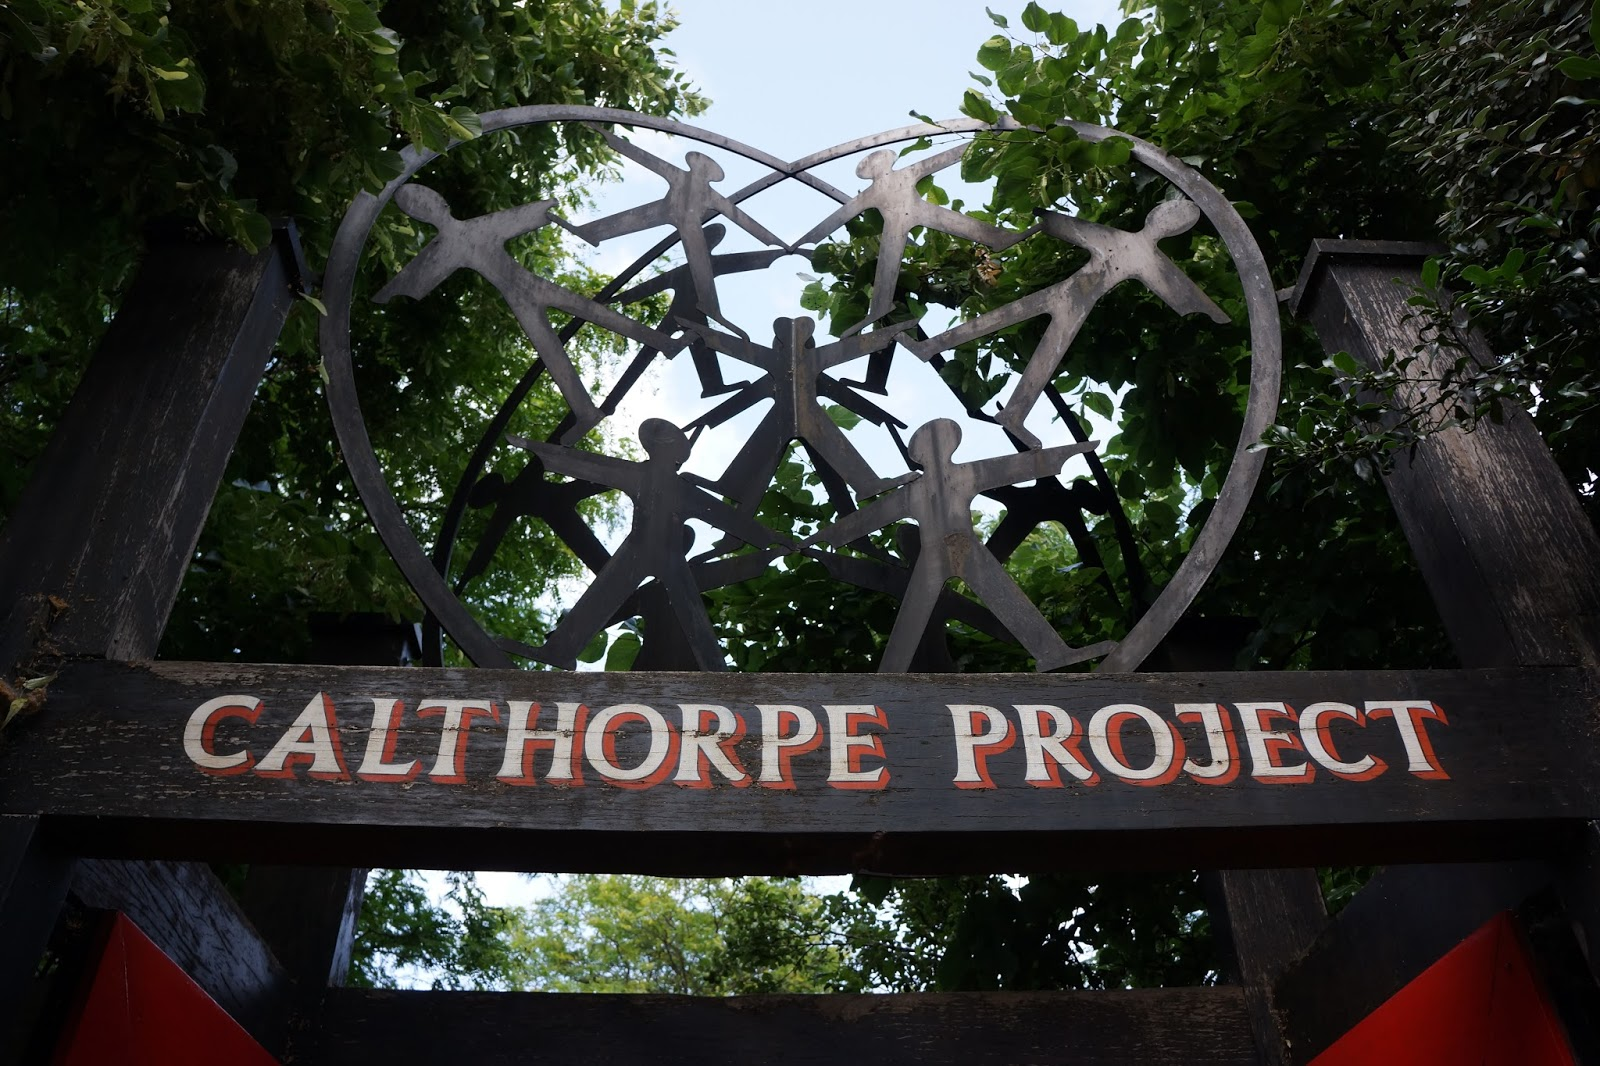 calthorpe project gates